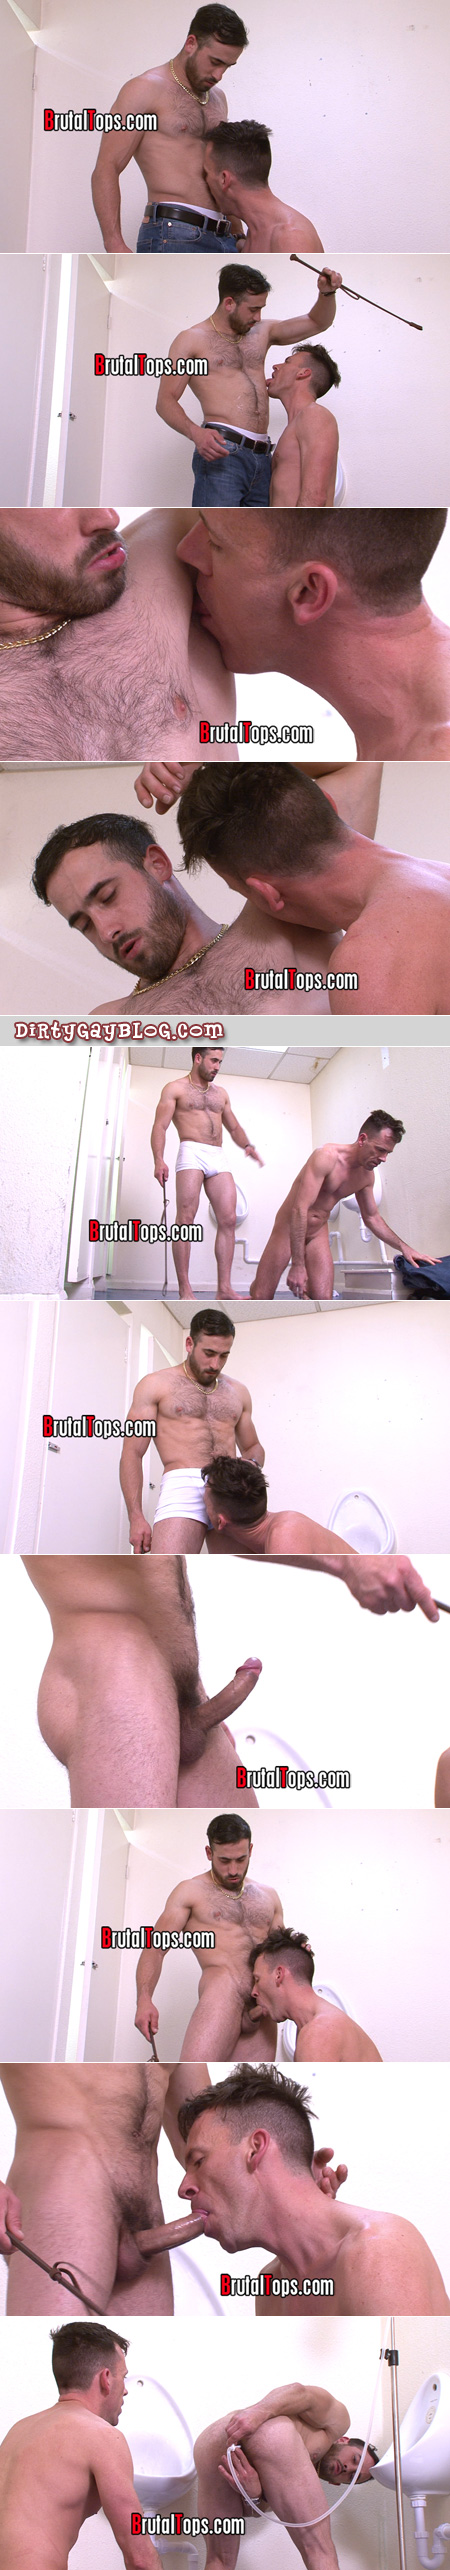 Straight muscle guy humiliating a gay bottom.